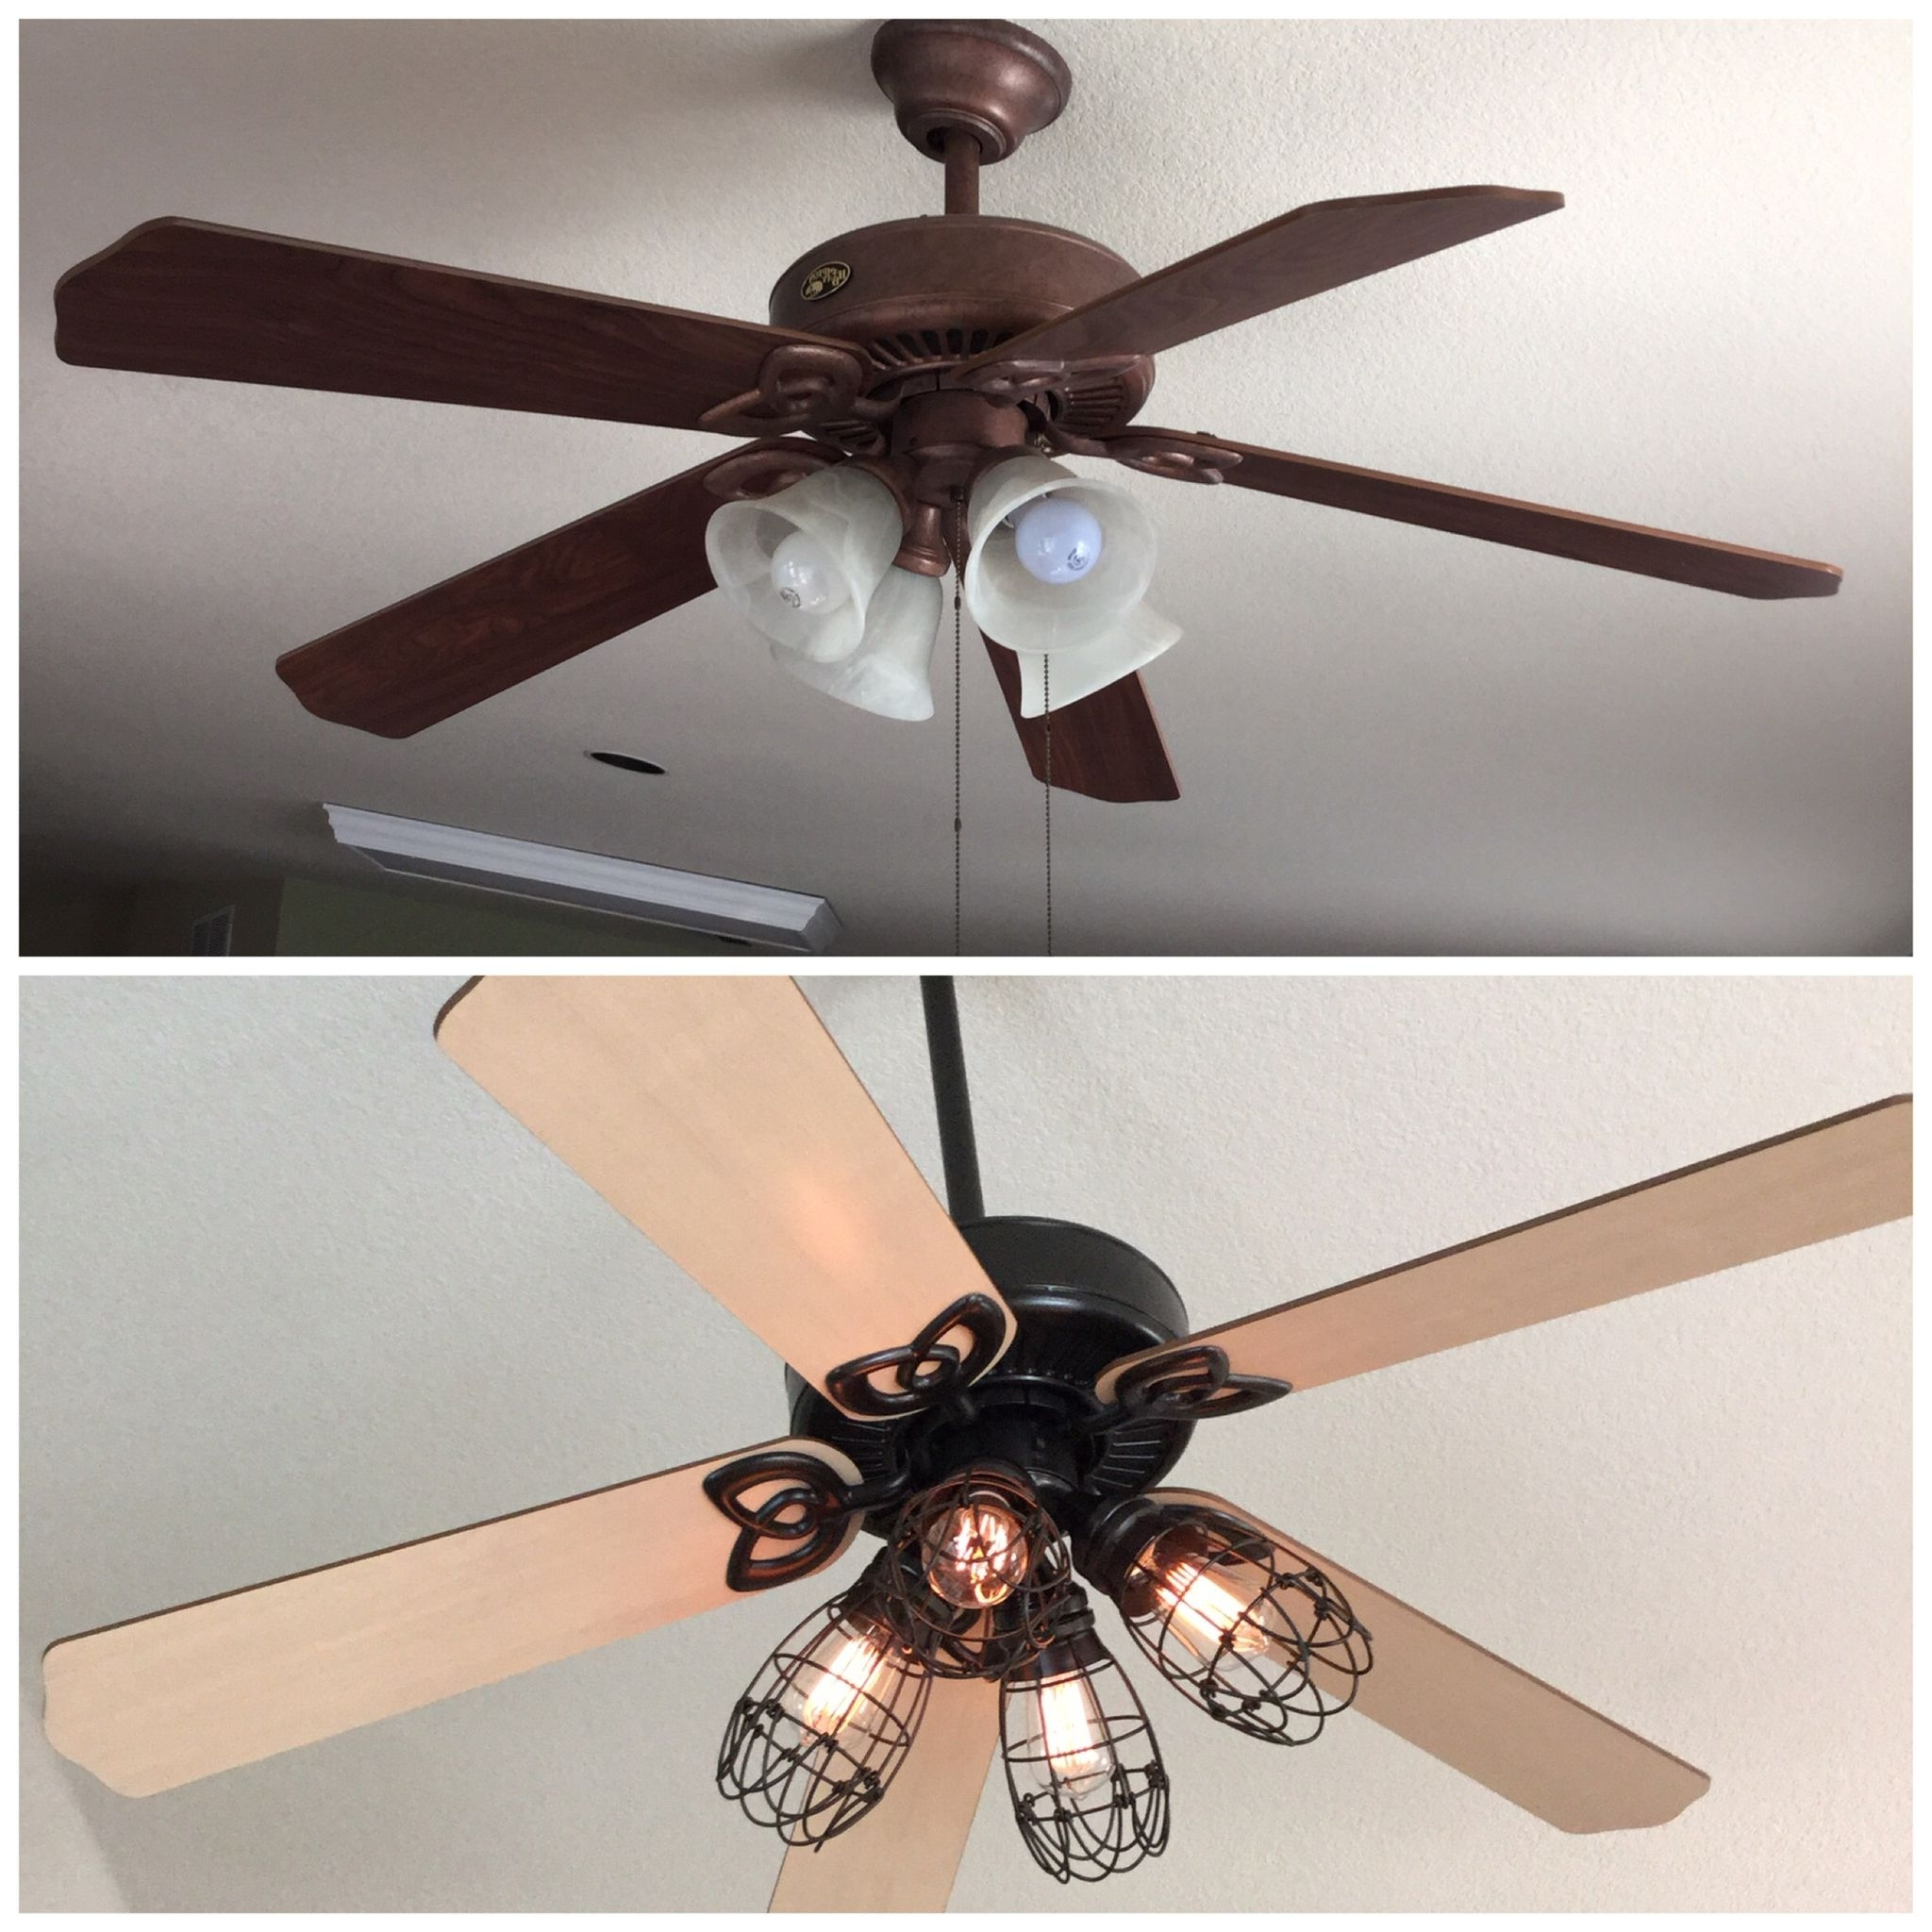 Current Diy Ceiling Fan Makeover: Add Cage Bulb Guards And Edison Bulbs With Outdoor Ceiling Fans With Guard (View 6 of 20)